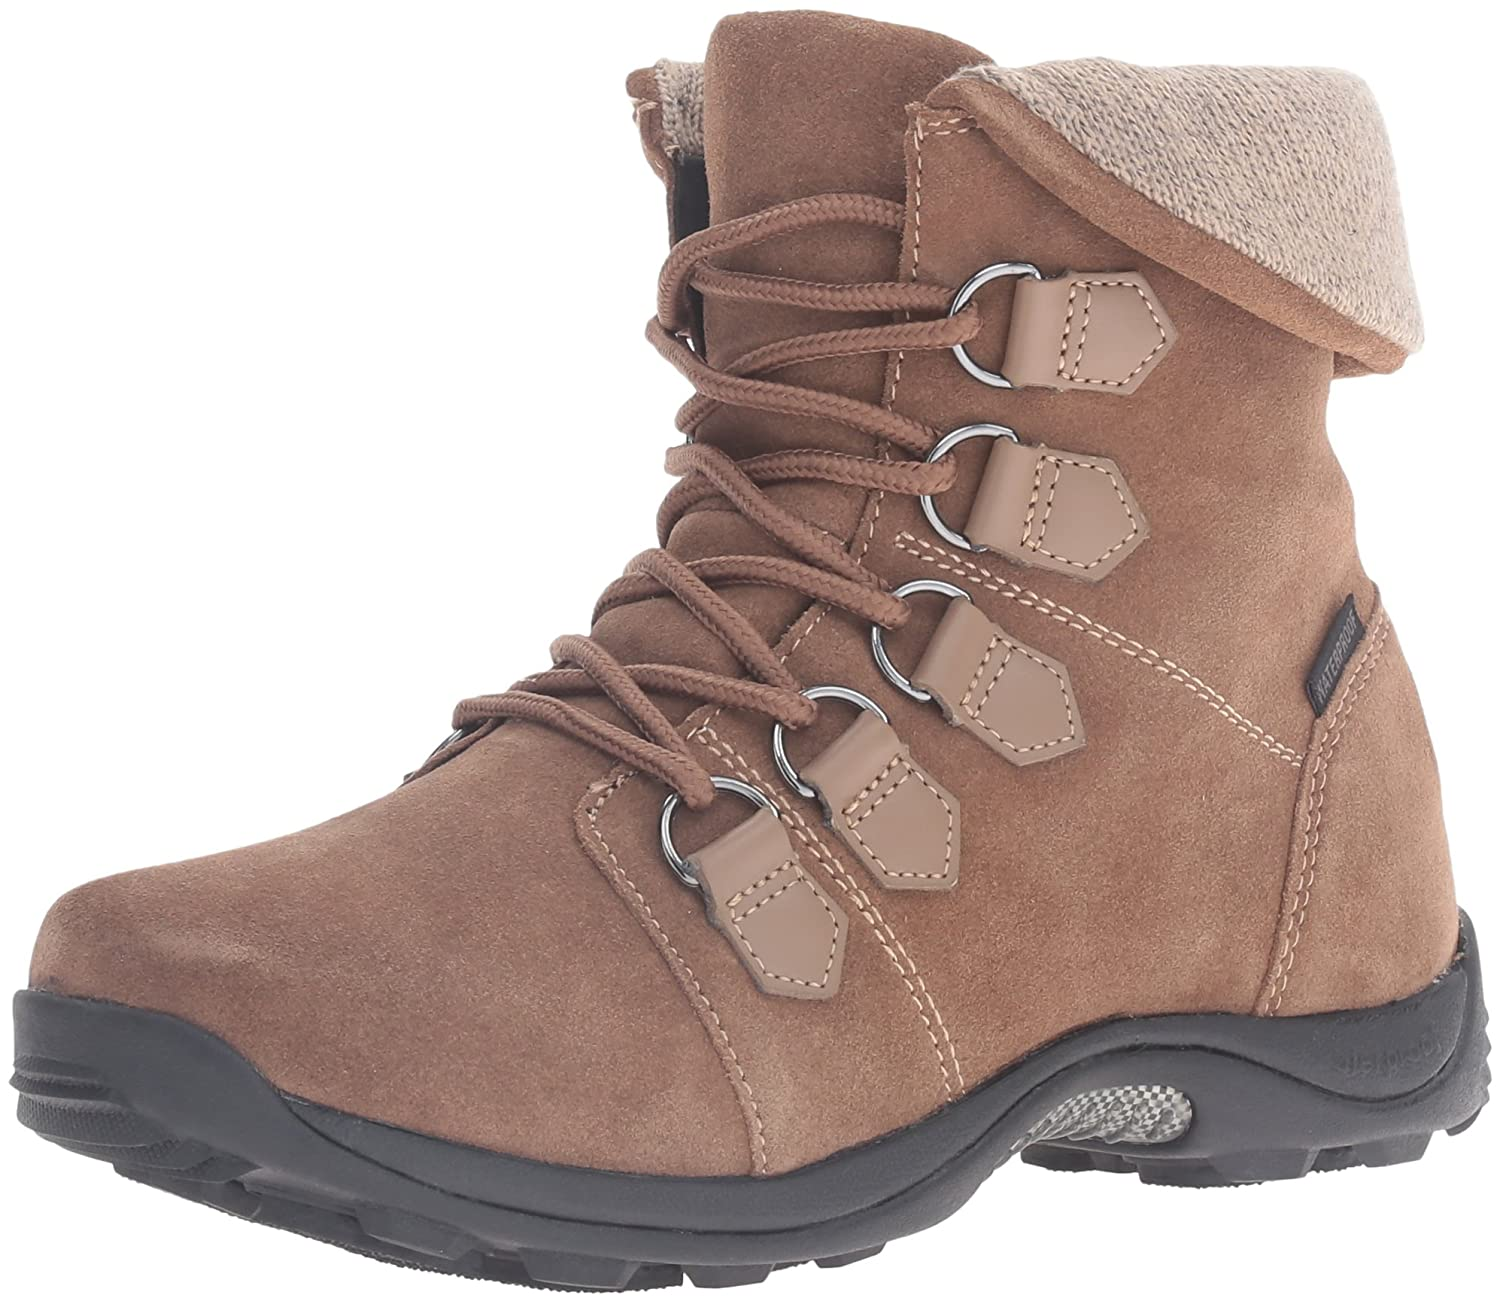 Baffin Women's Verbier Snow Boot B01BOWGVYG 7 B(M) US|Taupe